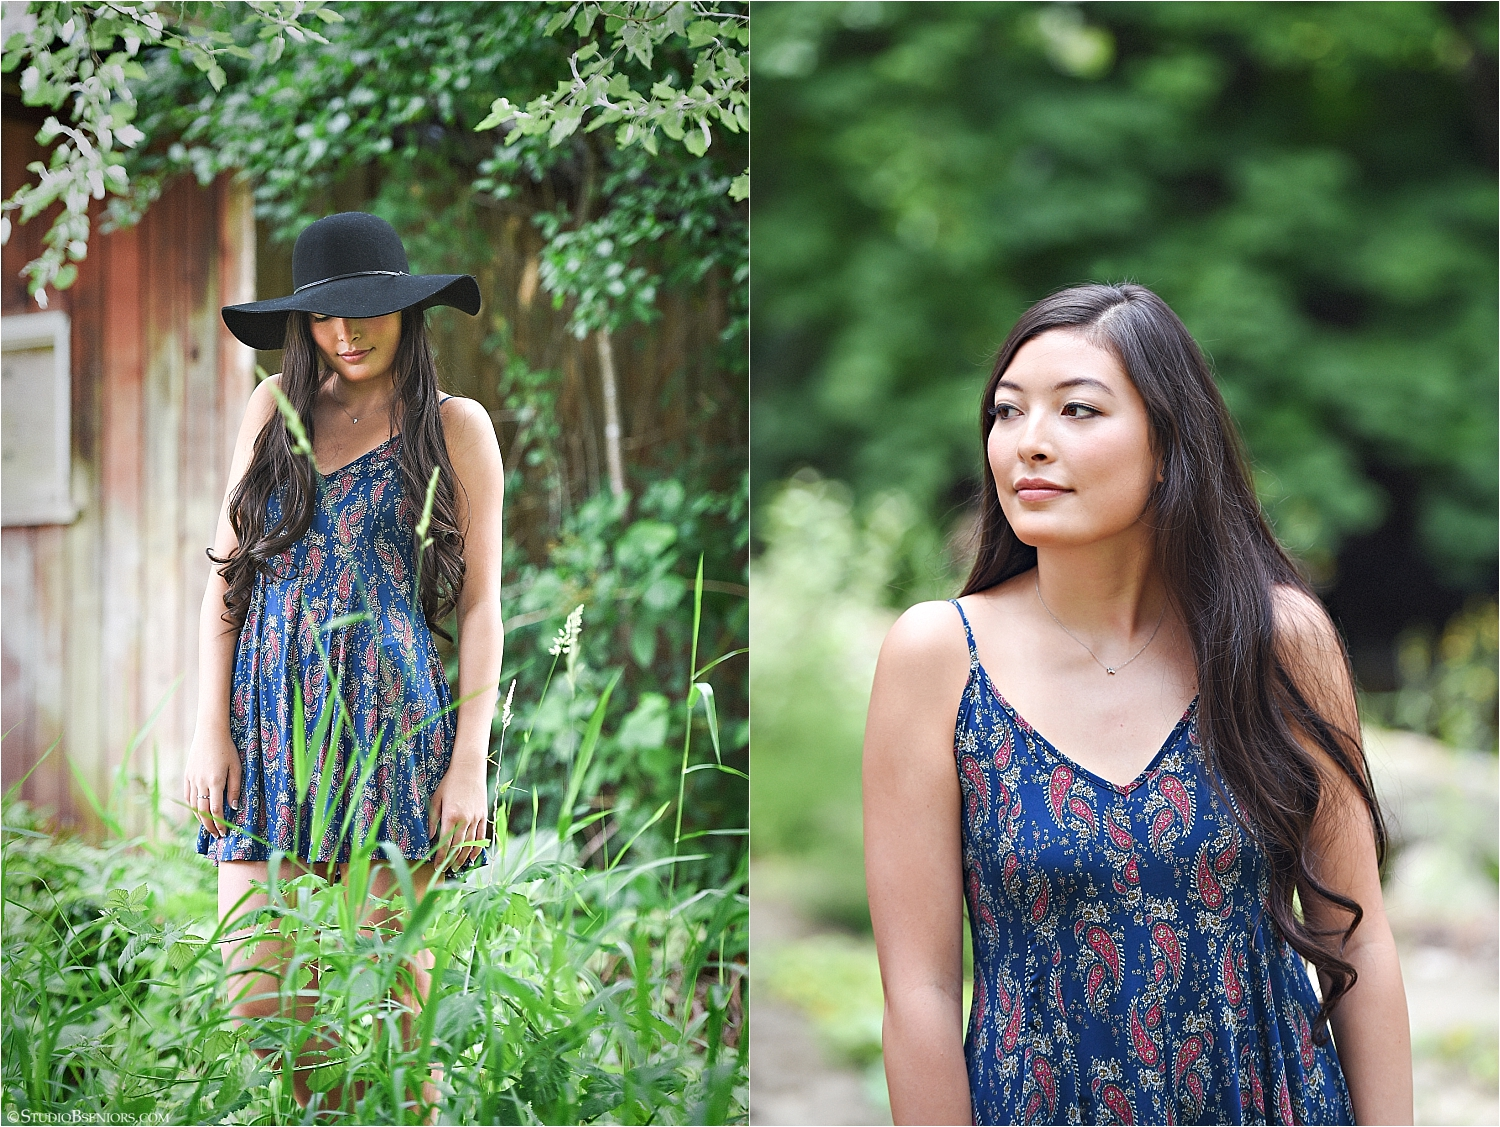 Pretty Asian girl in boho dress and black hat.jpg